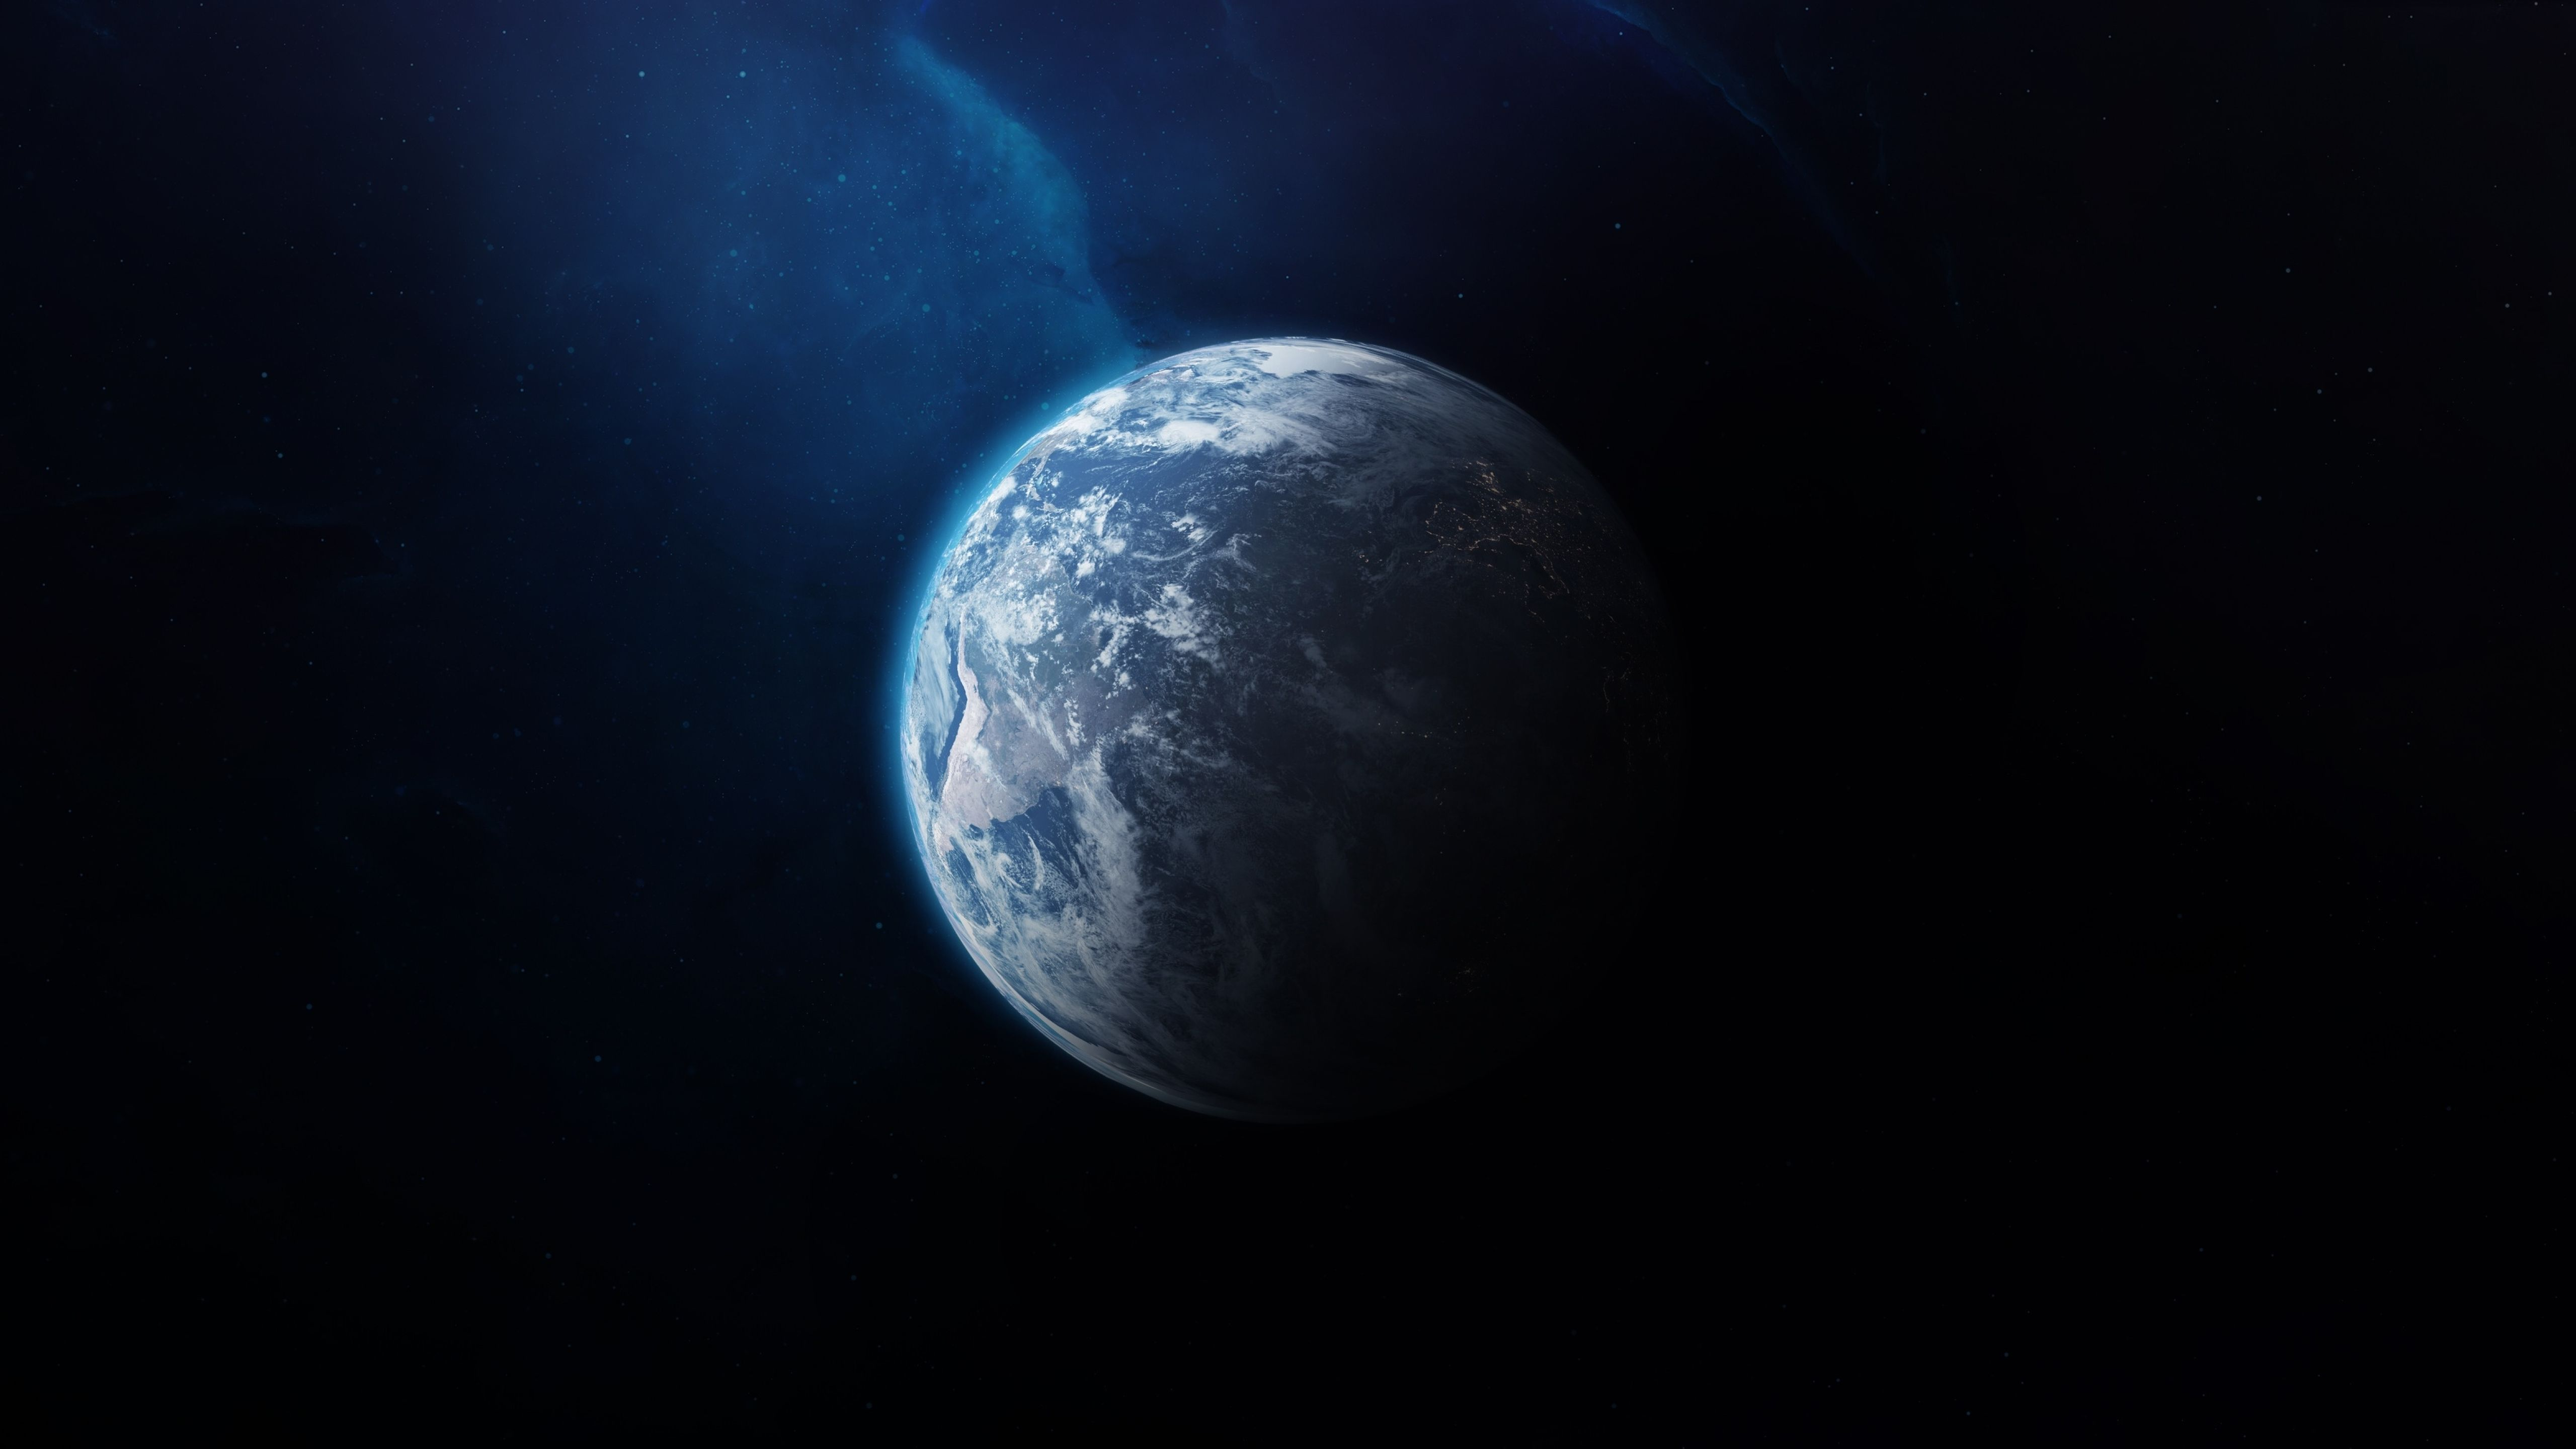 5120x2880 5120x2880 Earth From Outer Space 5K Wallpaper, HD Space 4K ...